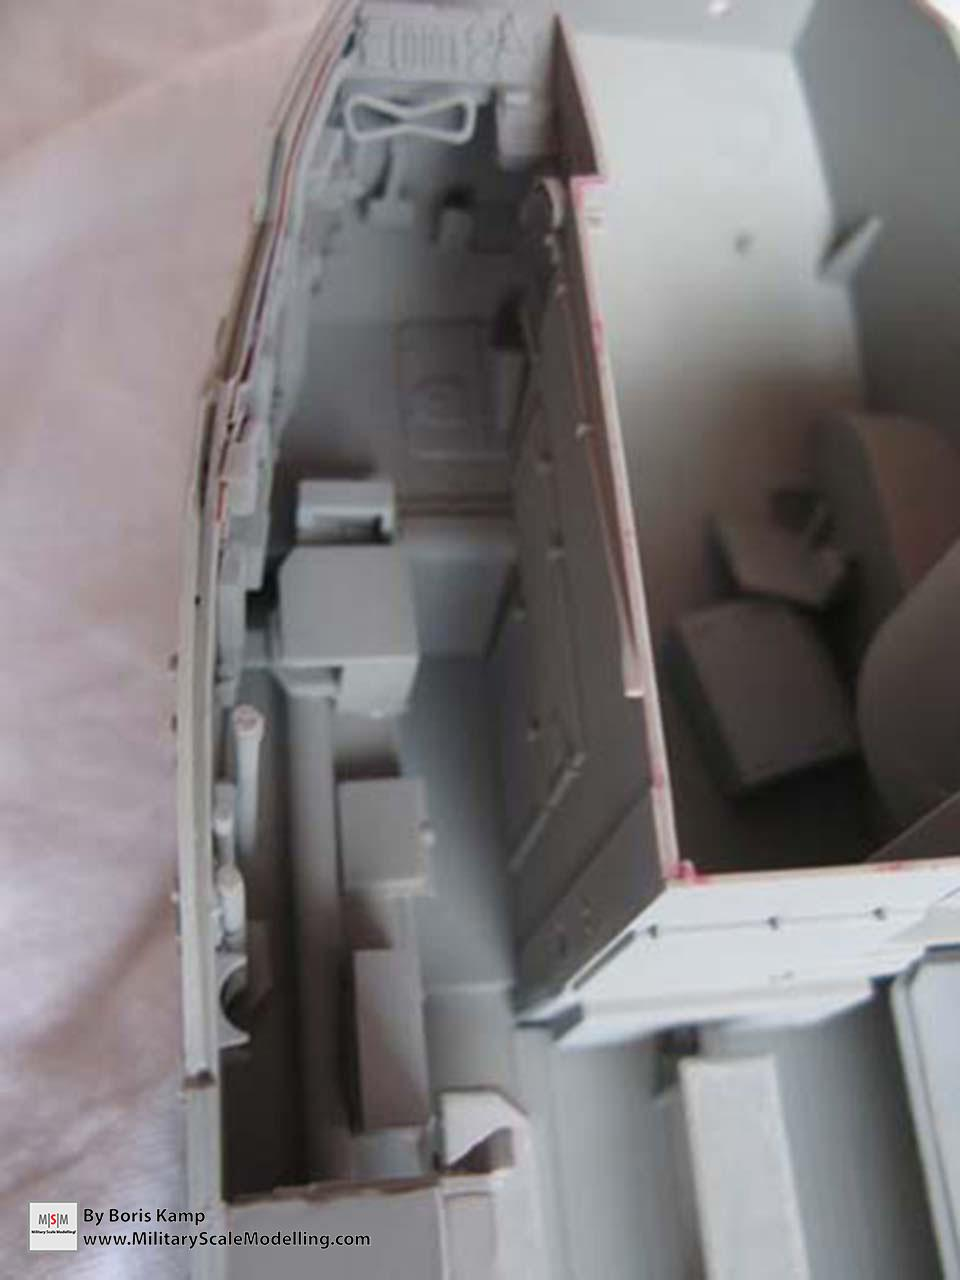 painted with primer (AAVP-7A1 RAM RS HobbyBoss 82415)